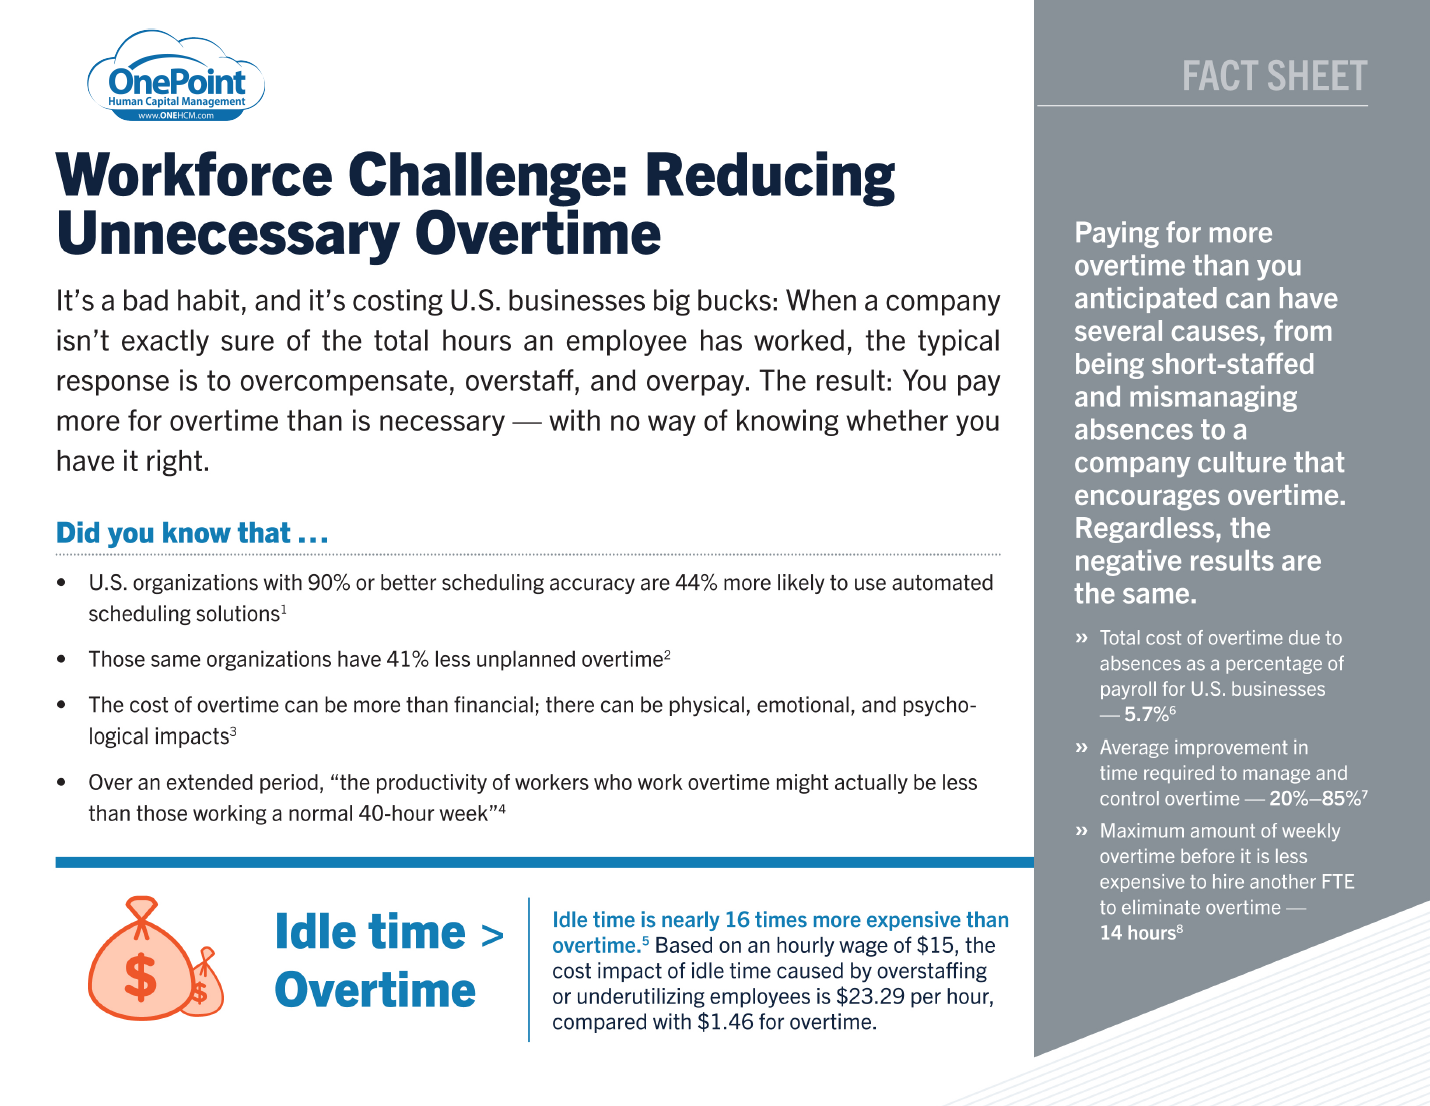 Reducing Uneccessary Overtime Fact Sheet Thumbnail